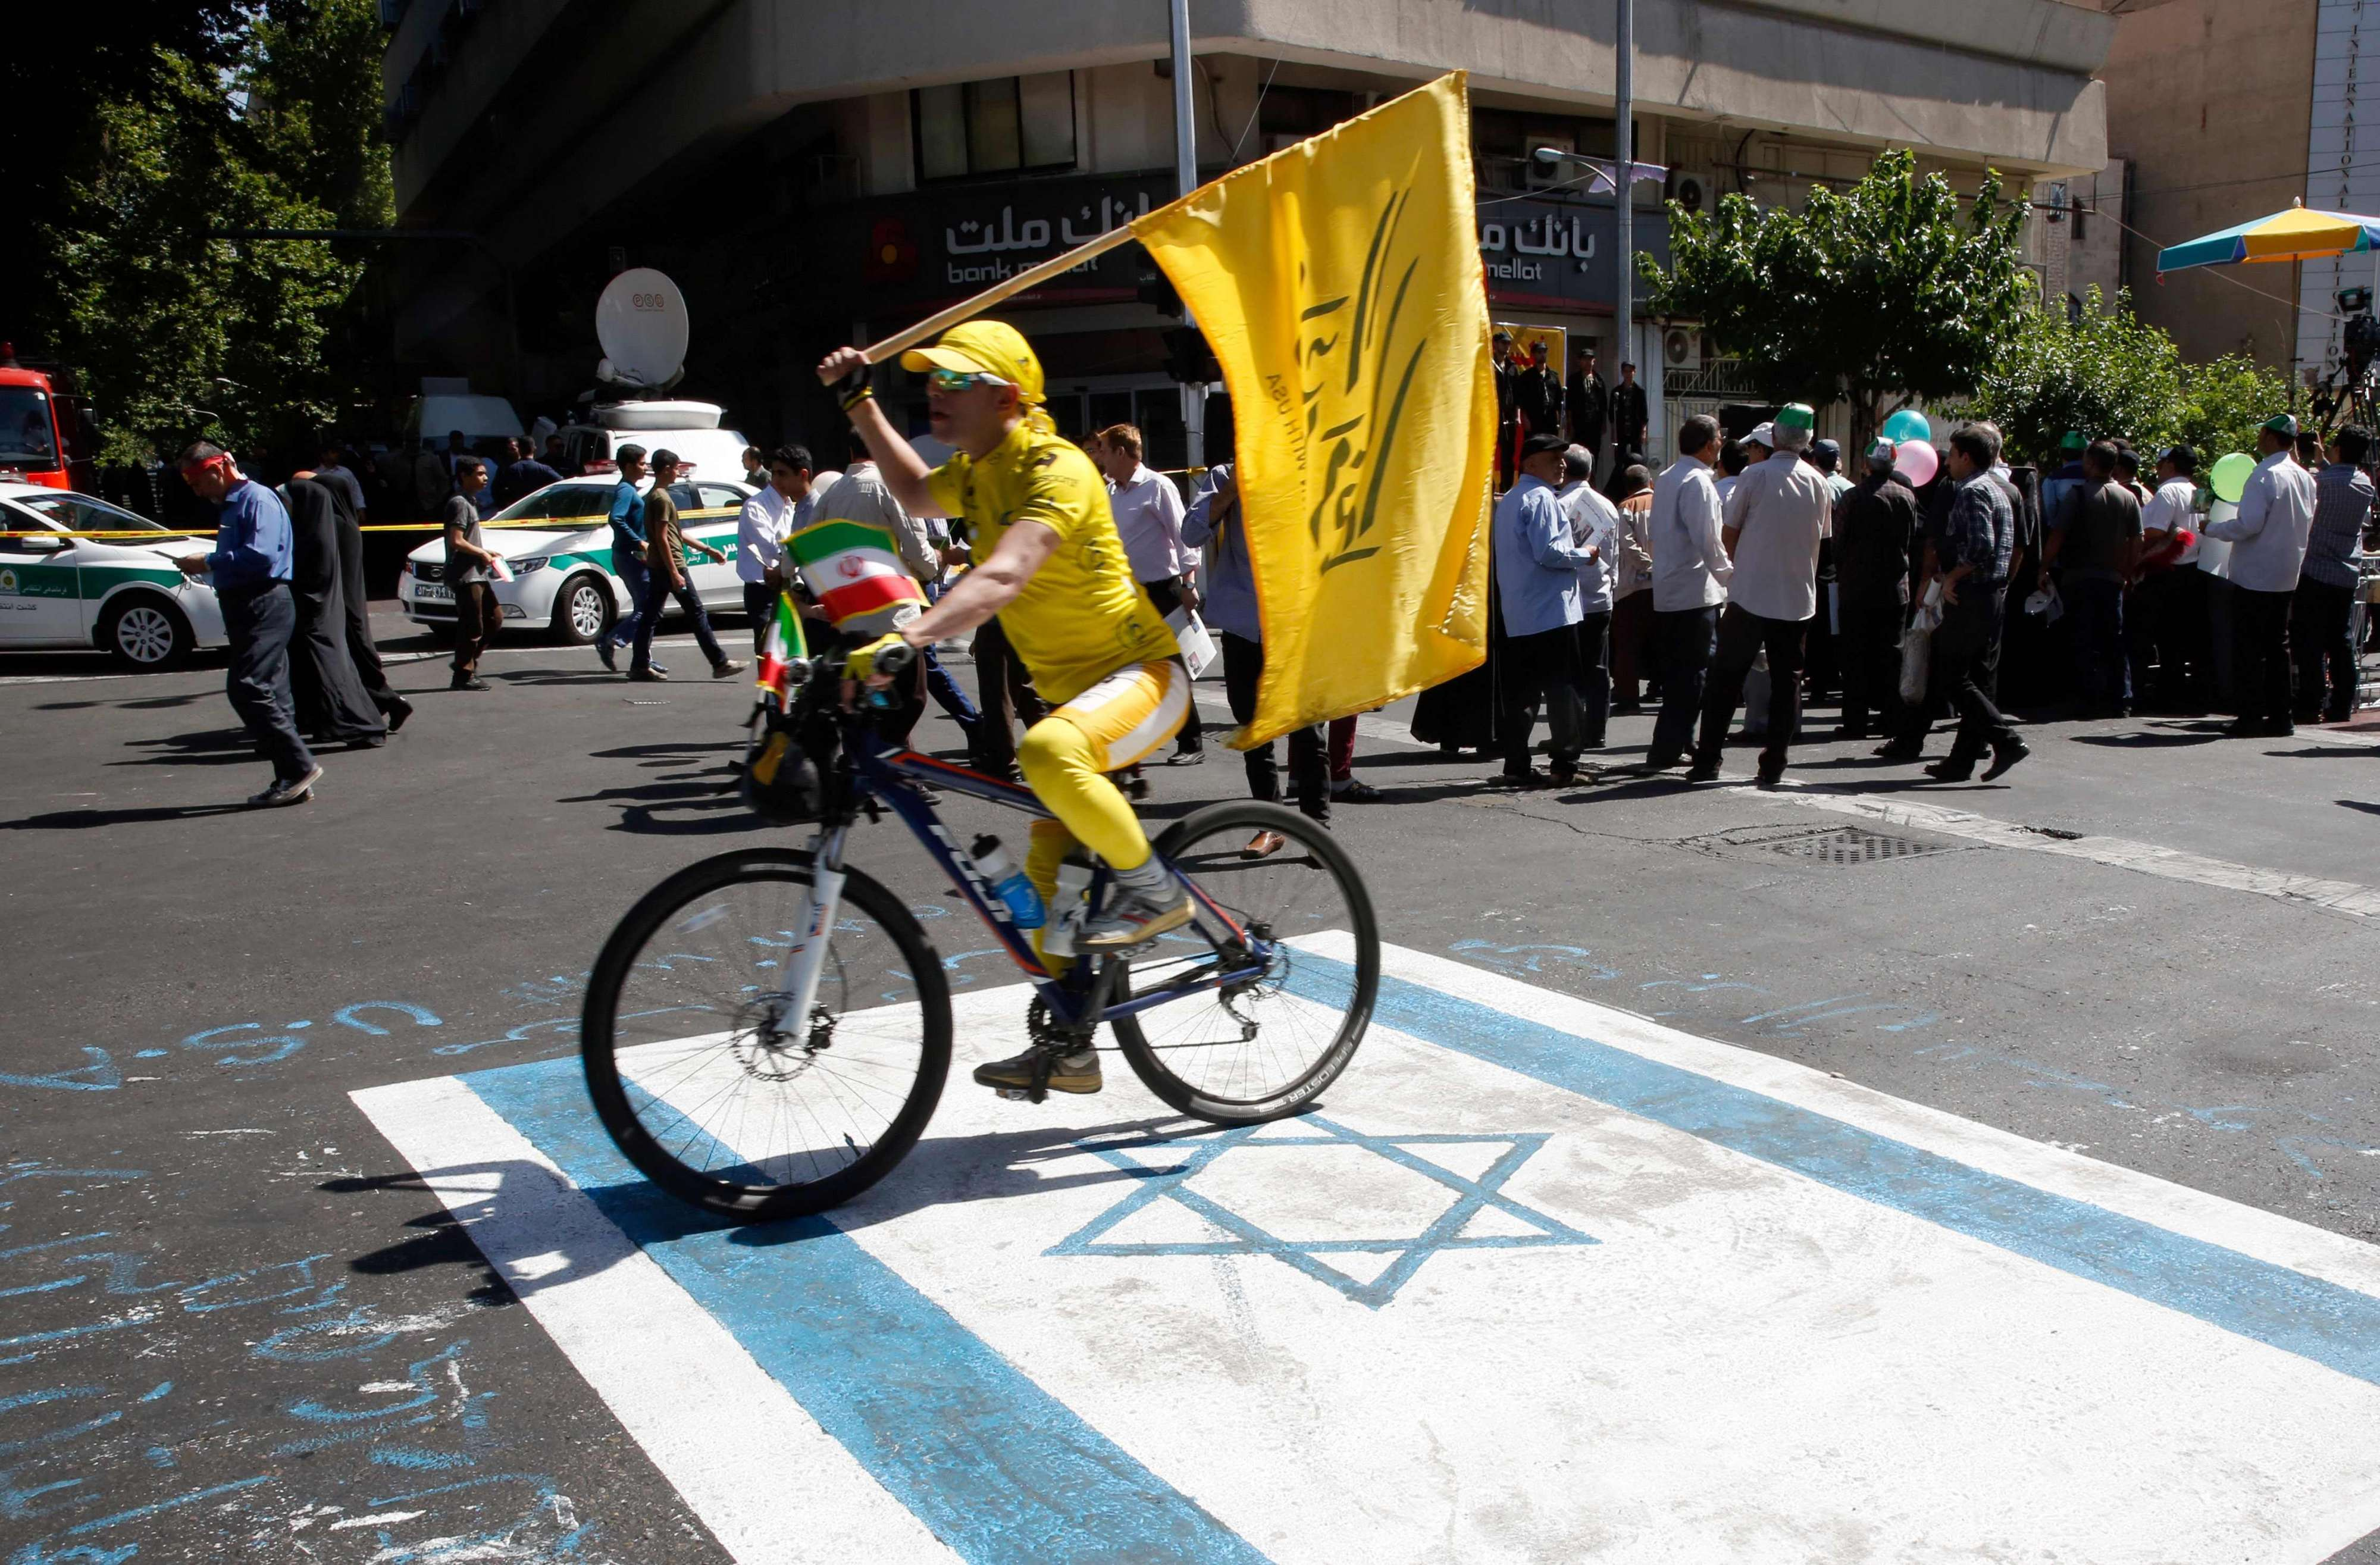 An Iranian man rides his bicycle across a reproduction of an Israeli flag painted on a street in Tehran. (AFP)